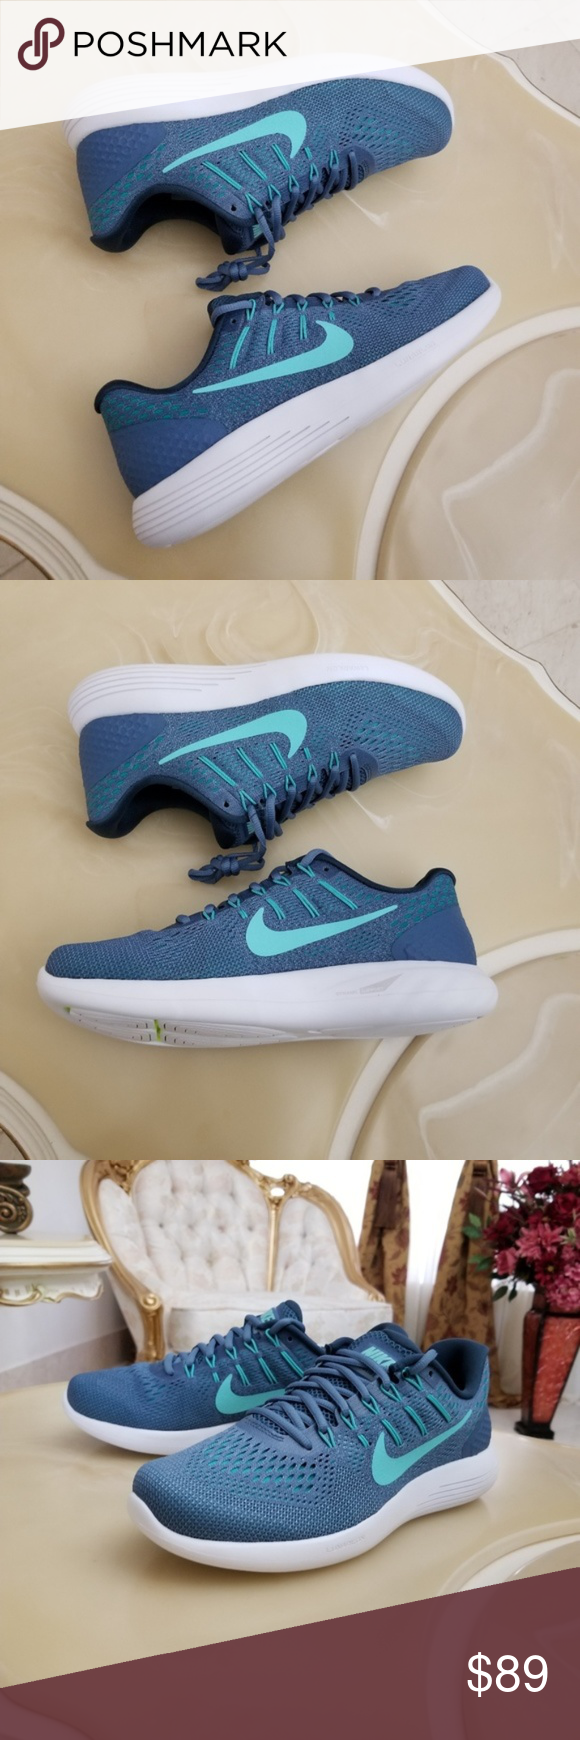 ac599eac319 Nike Lunarglide 8 Running Shoes New In Box 100% Authentic ...